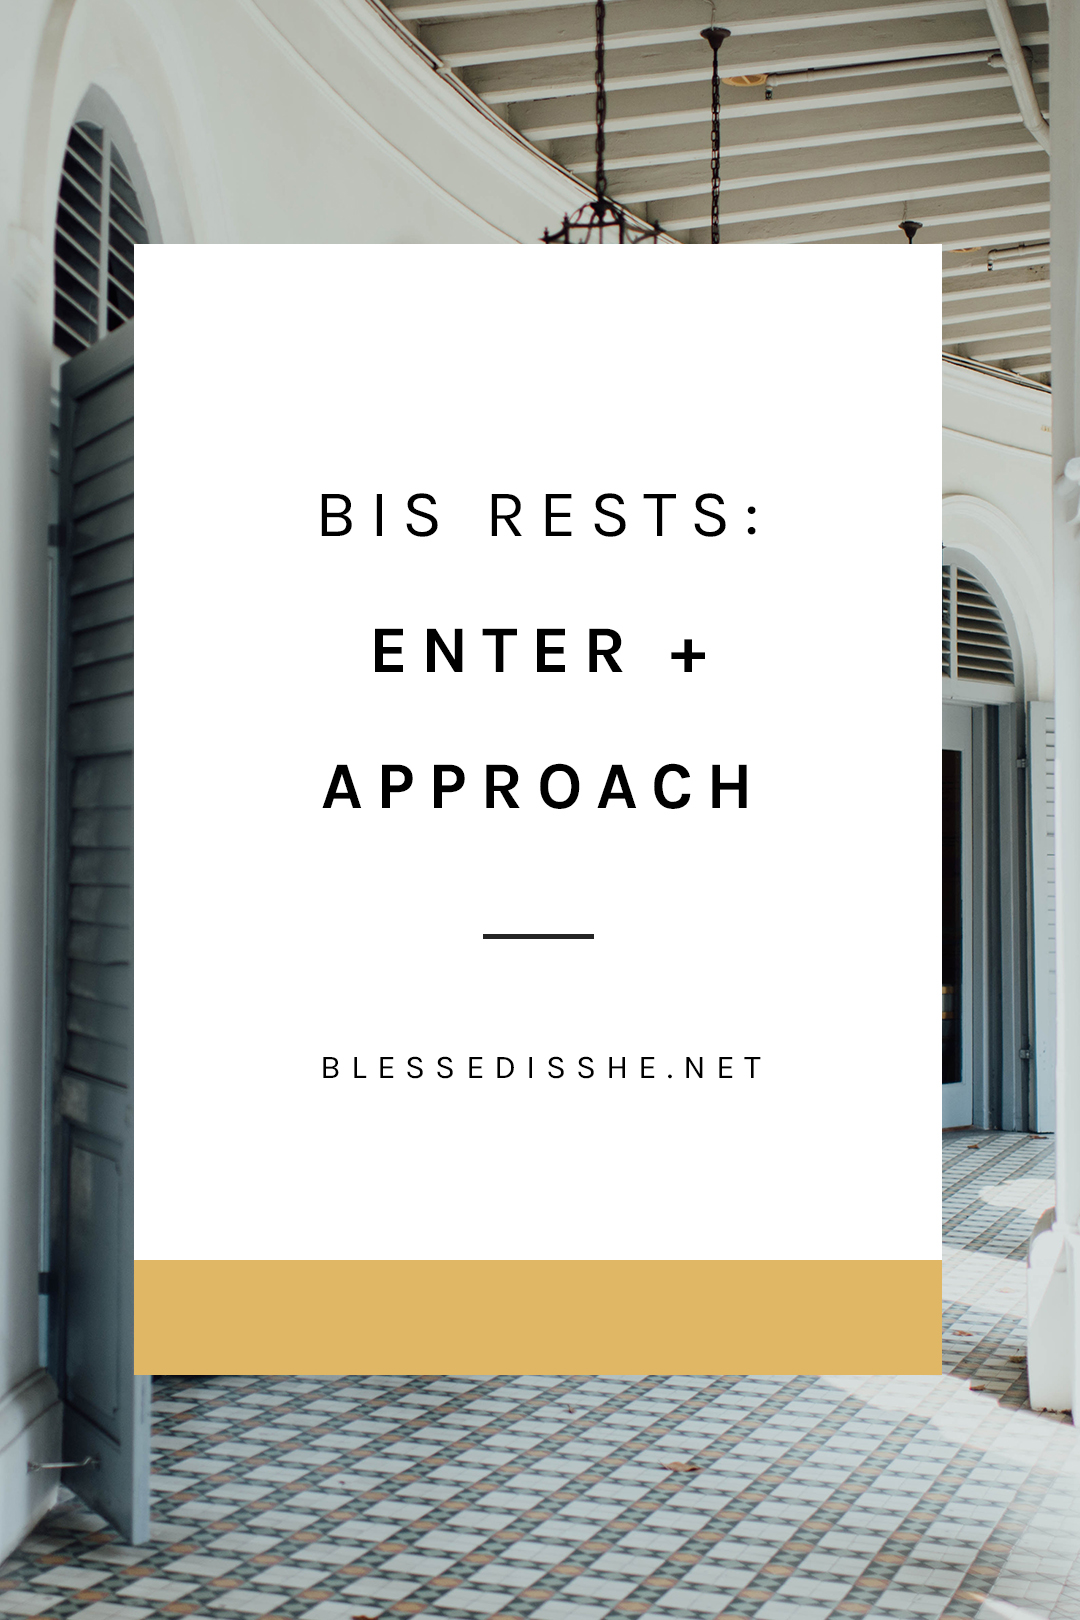 bis rests enter + approach